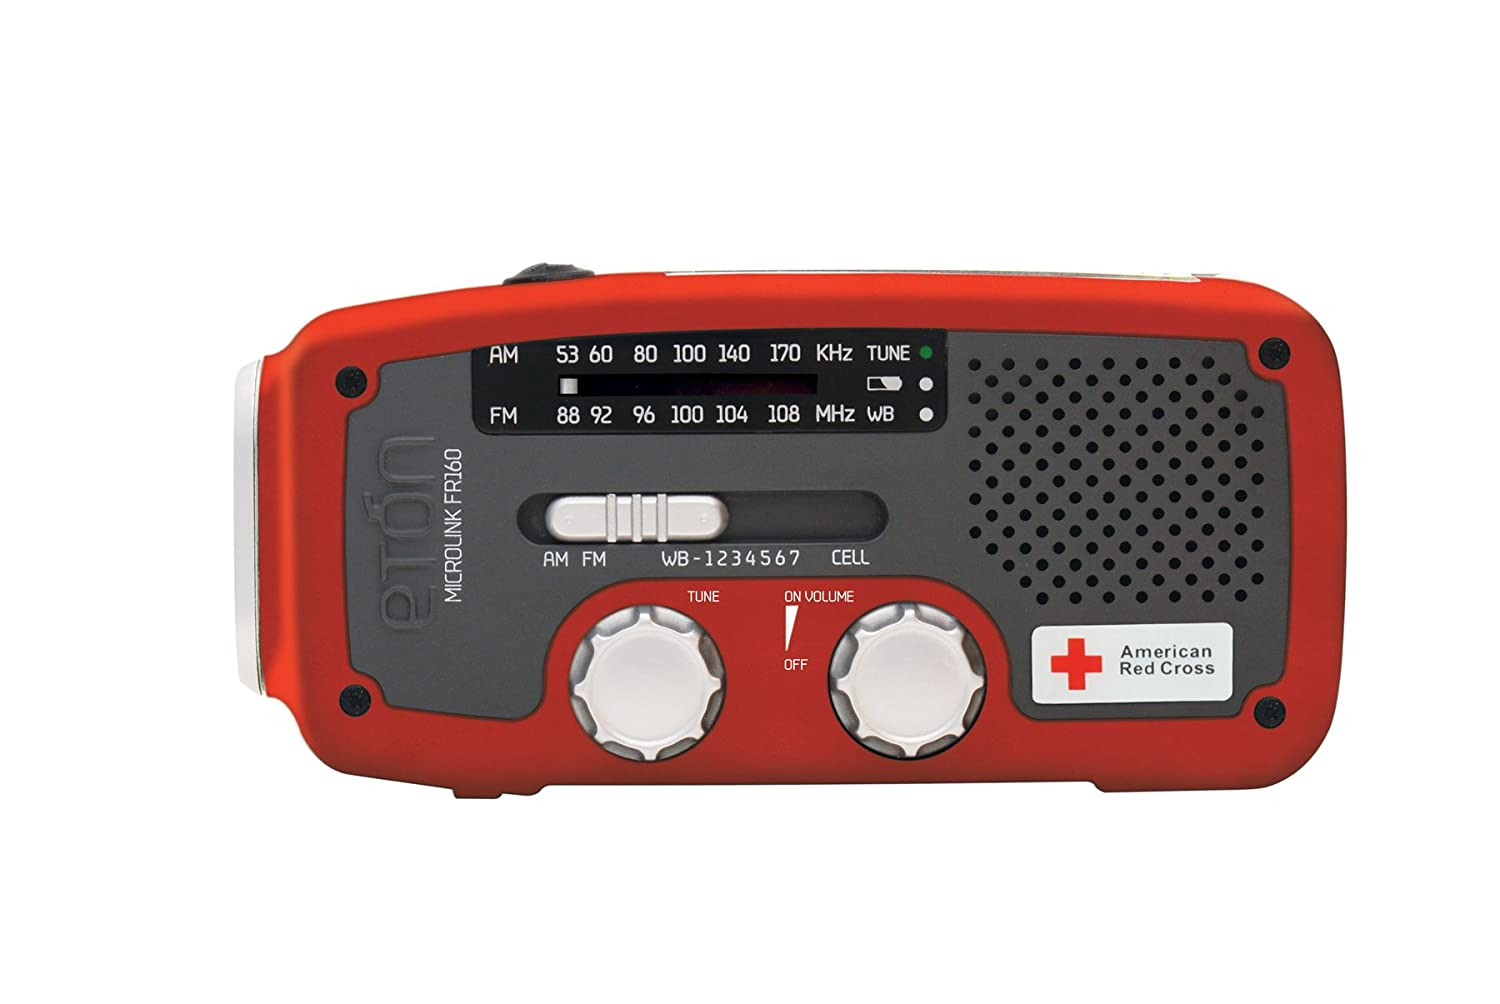 Eton American Red Cross FR160 Self-Powered AM/FM/NOAA Weather Radio with Flashlight, Solar Power, and Cell Phone Charger